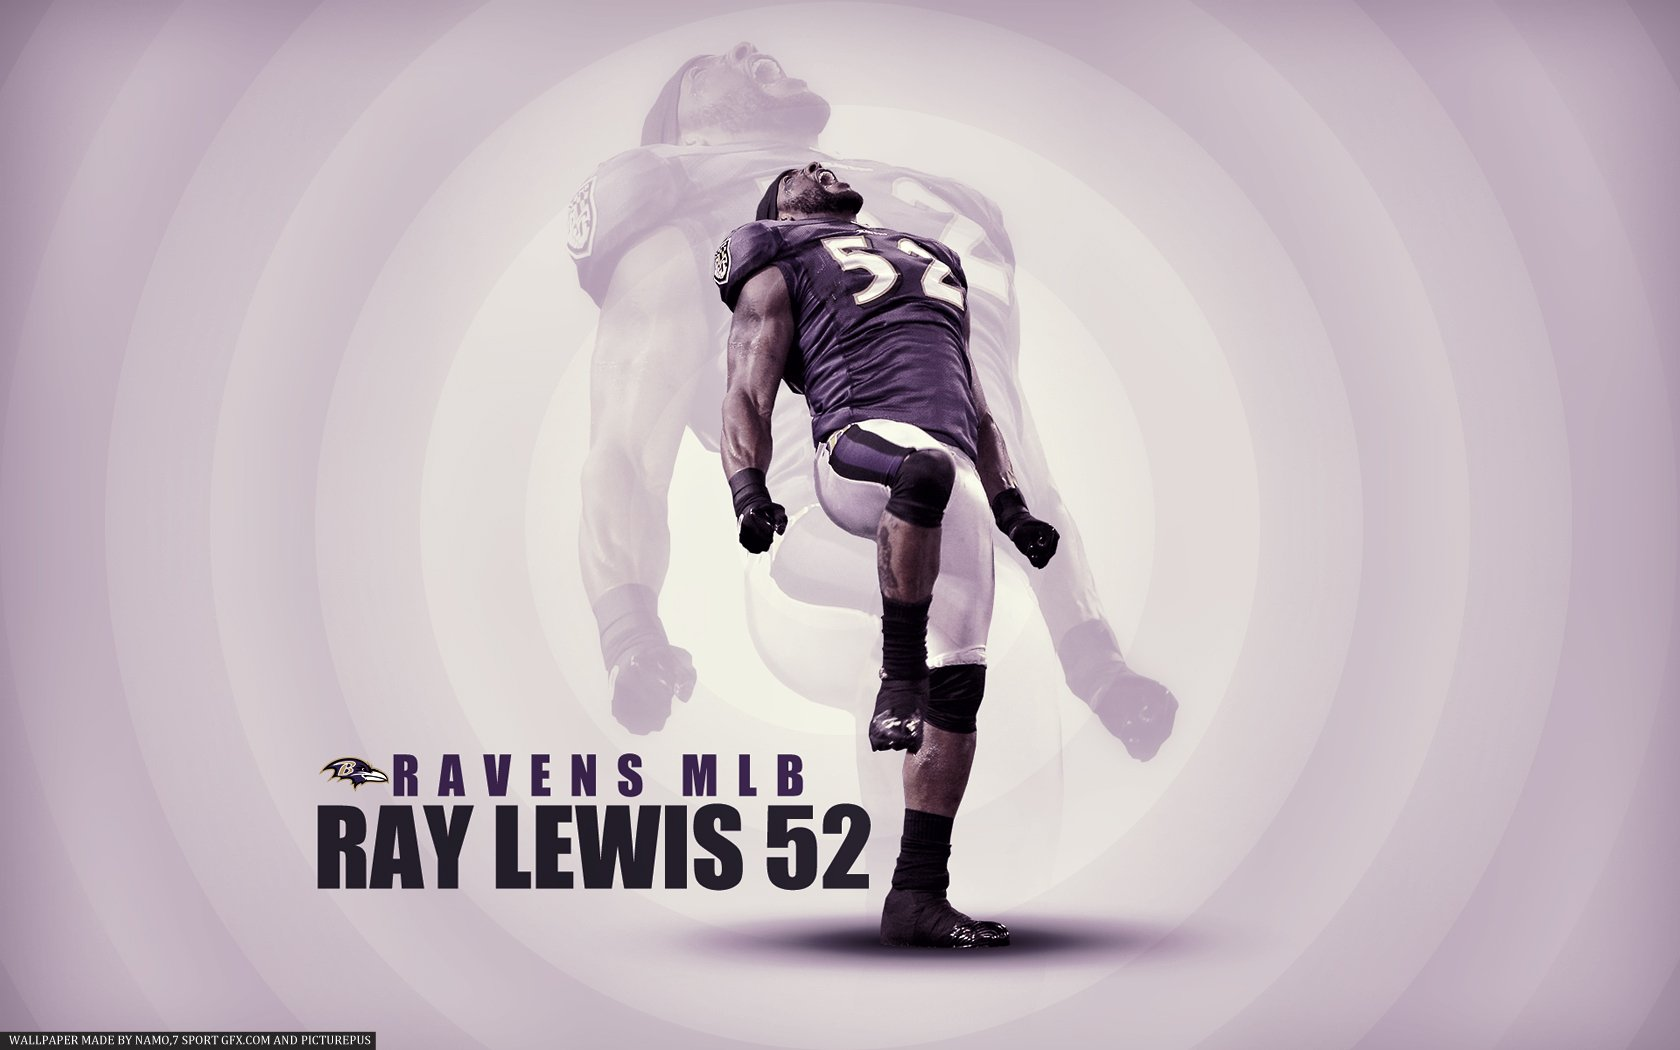 Ray Lewis Quotes About Football Quotesgram: Ray Lewis Quotes Wallpaper. QuotesGram